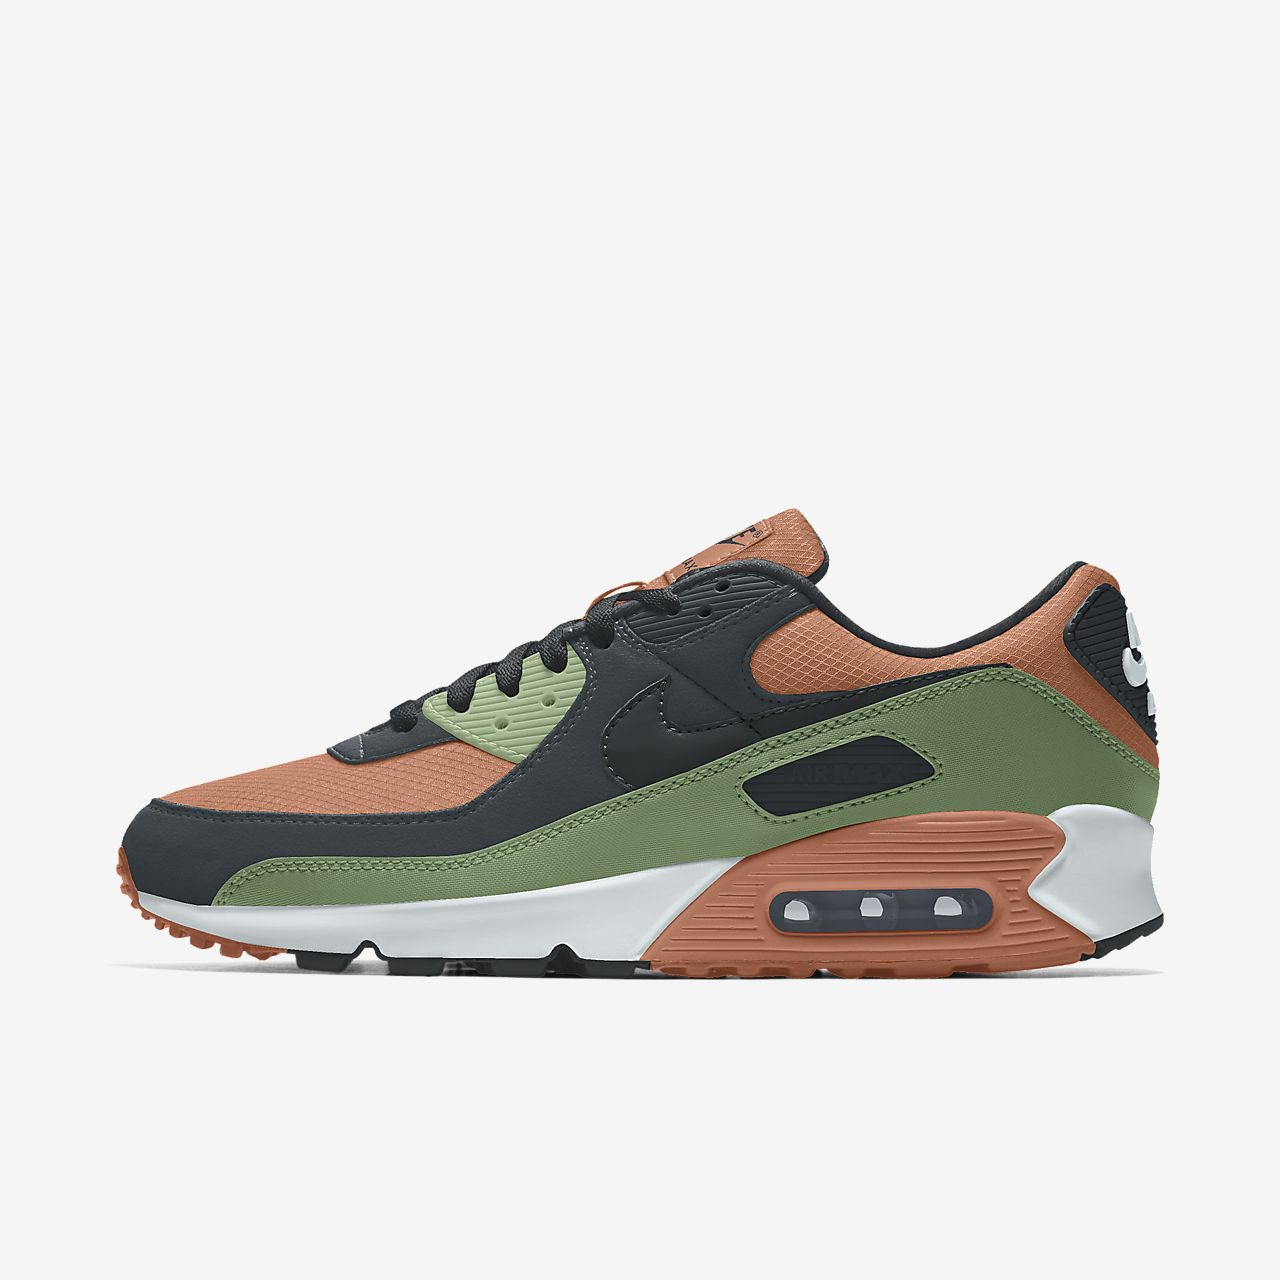 Nike Air Max 90 Unlocked By You Custom lifestyleschoen voor dames